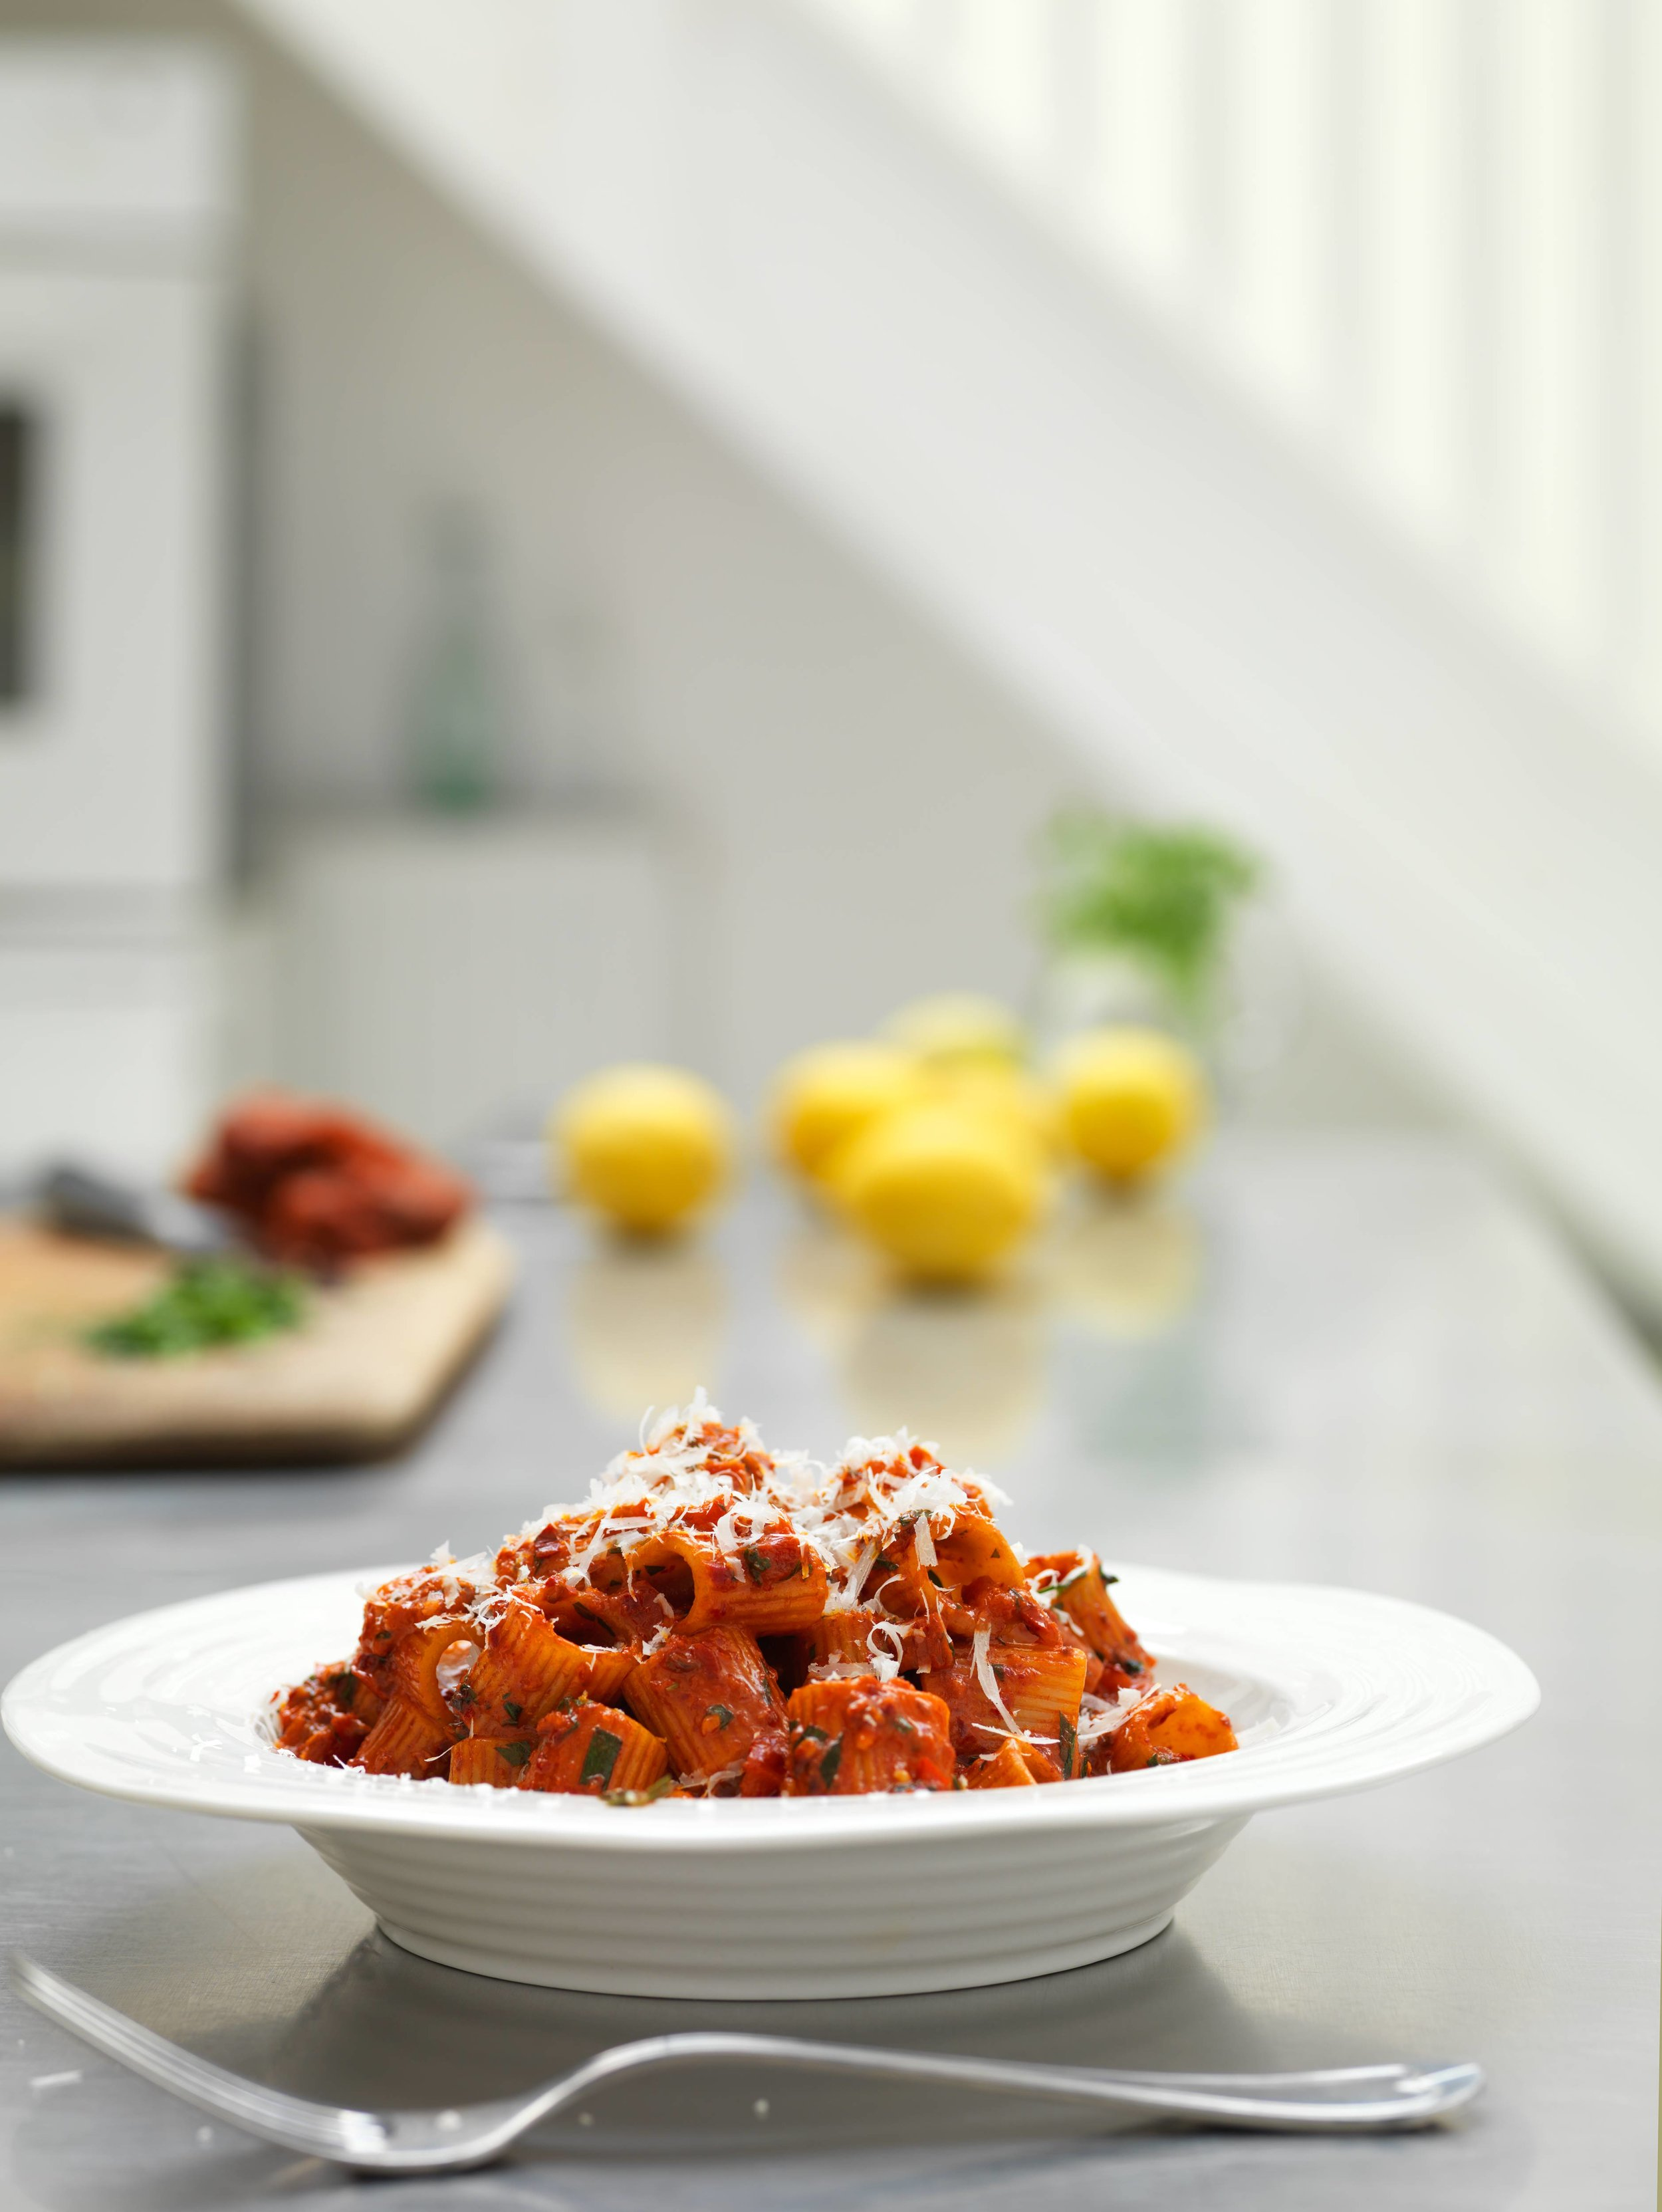 Loving n'duja whether on pizza or pasta